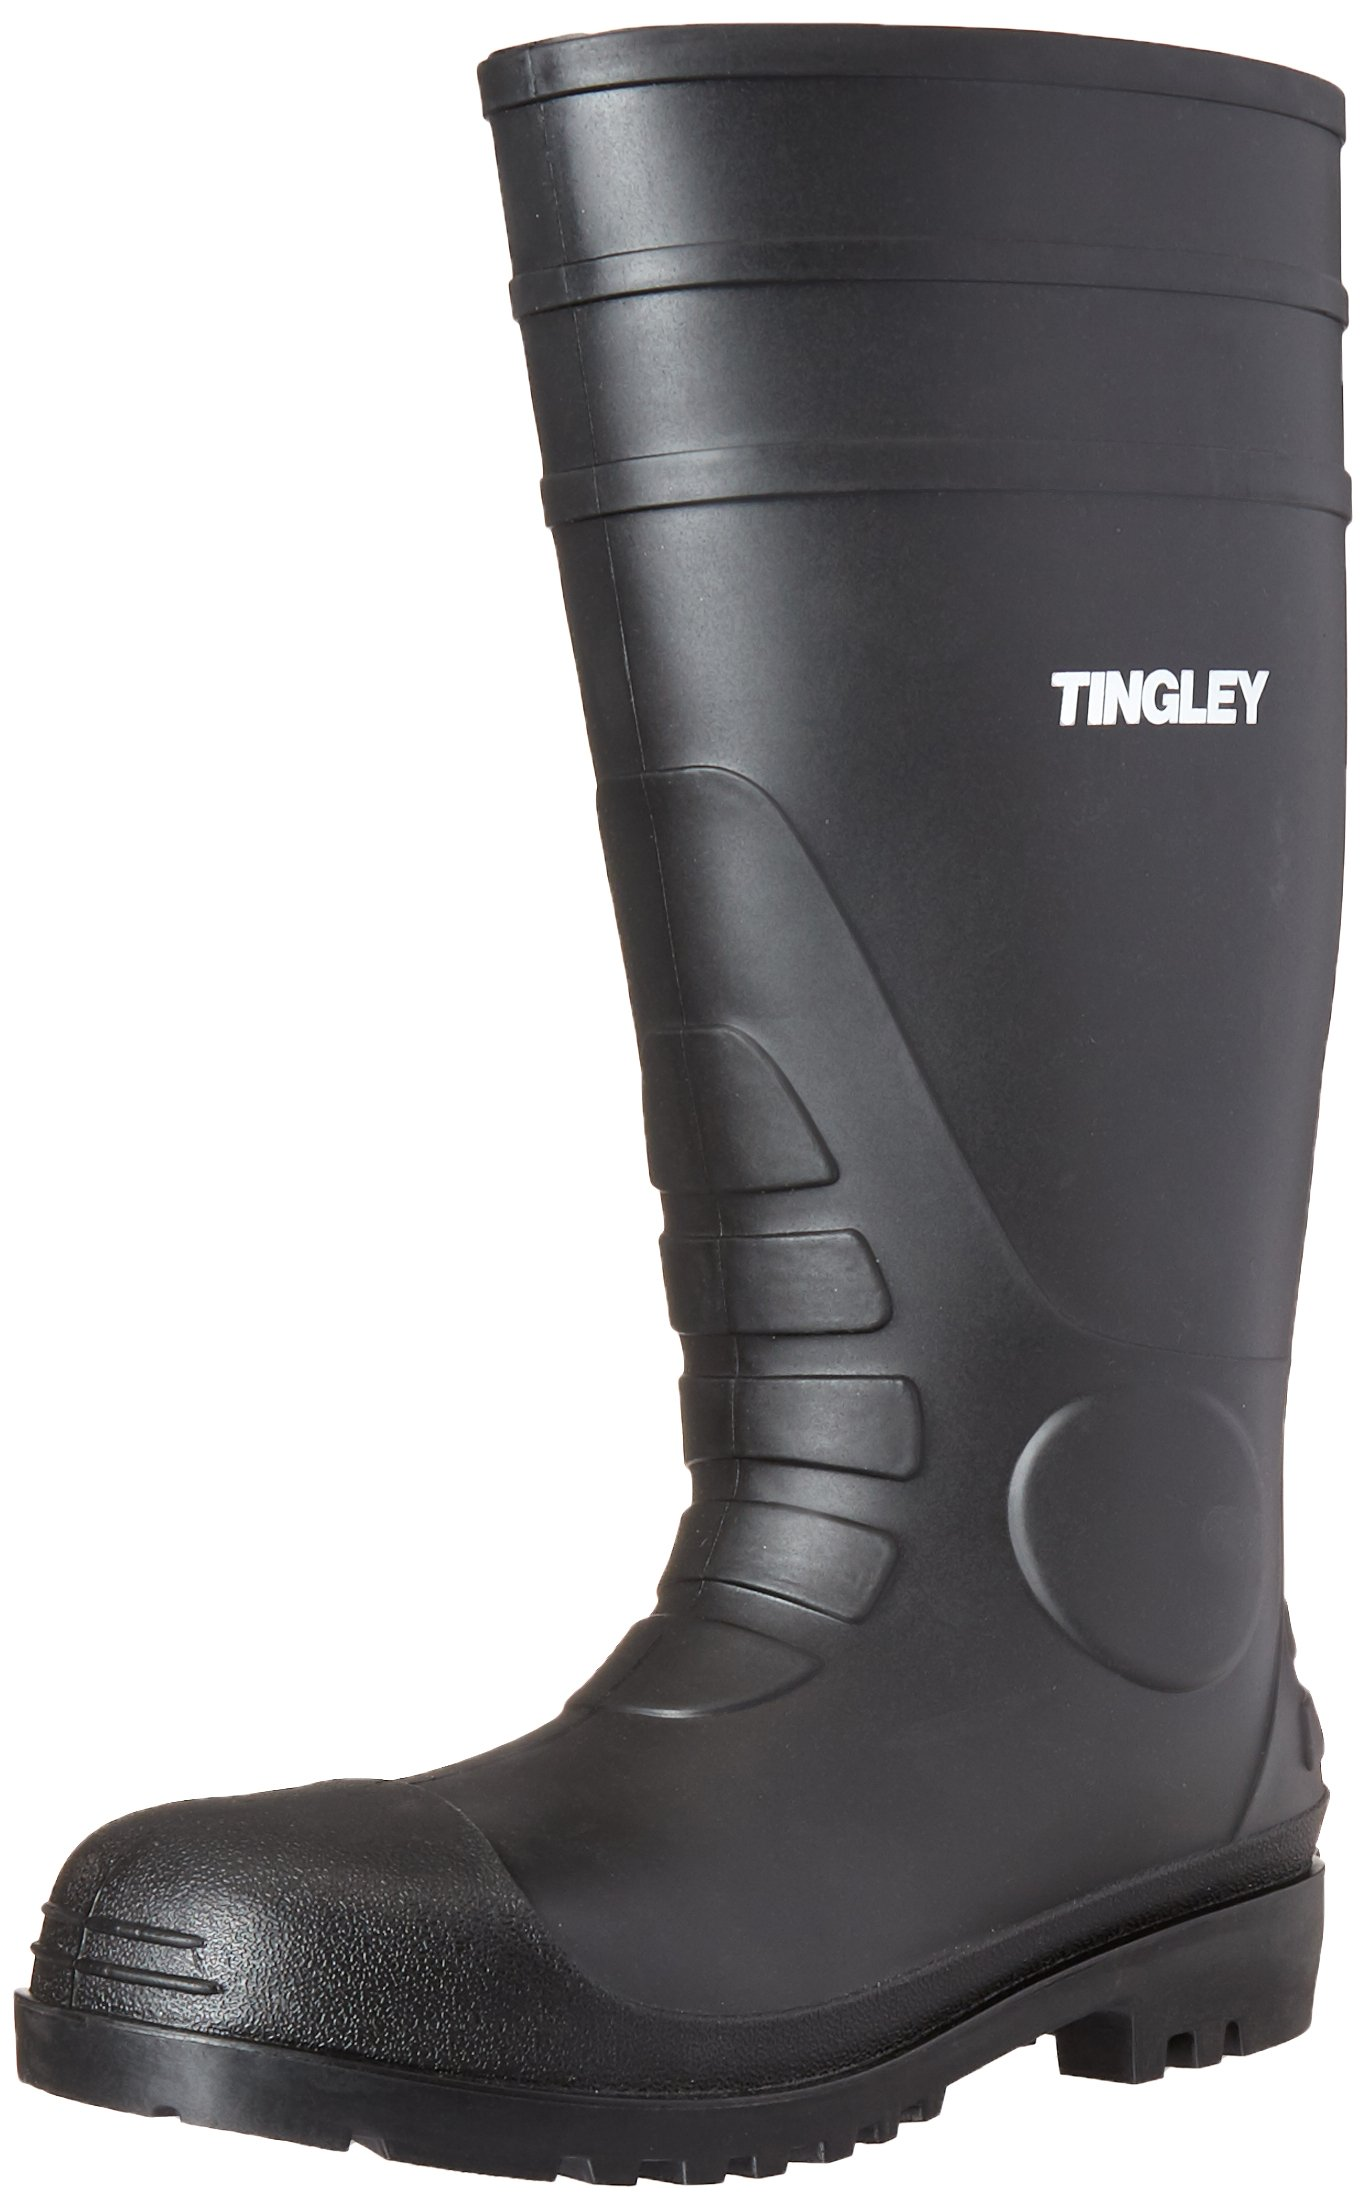 Tingley 31151 Economy SZ11 Kneed Boot for Agriculture, 15-Inch, Black by TINGLEY